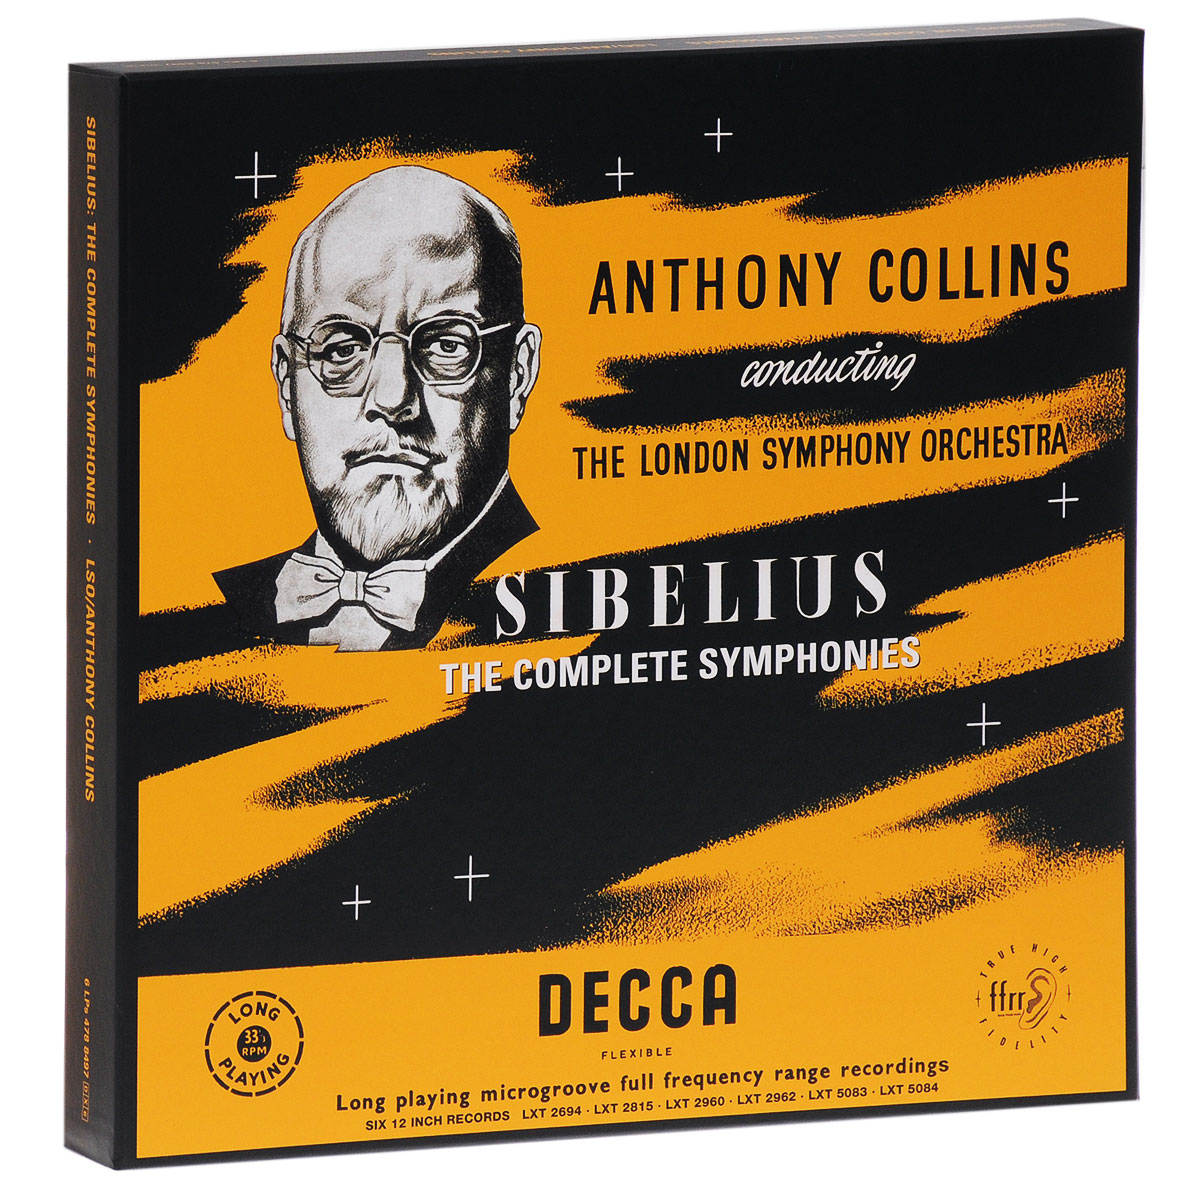 Энтони Коллинз,The London Symphony Orchestra Anthony Collins. Sibelius. The Complete Symphonies (6 LP) фил коллинз phil collins testify 2 lp